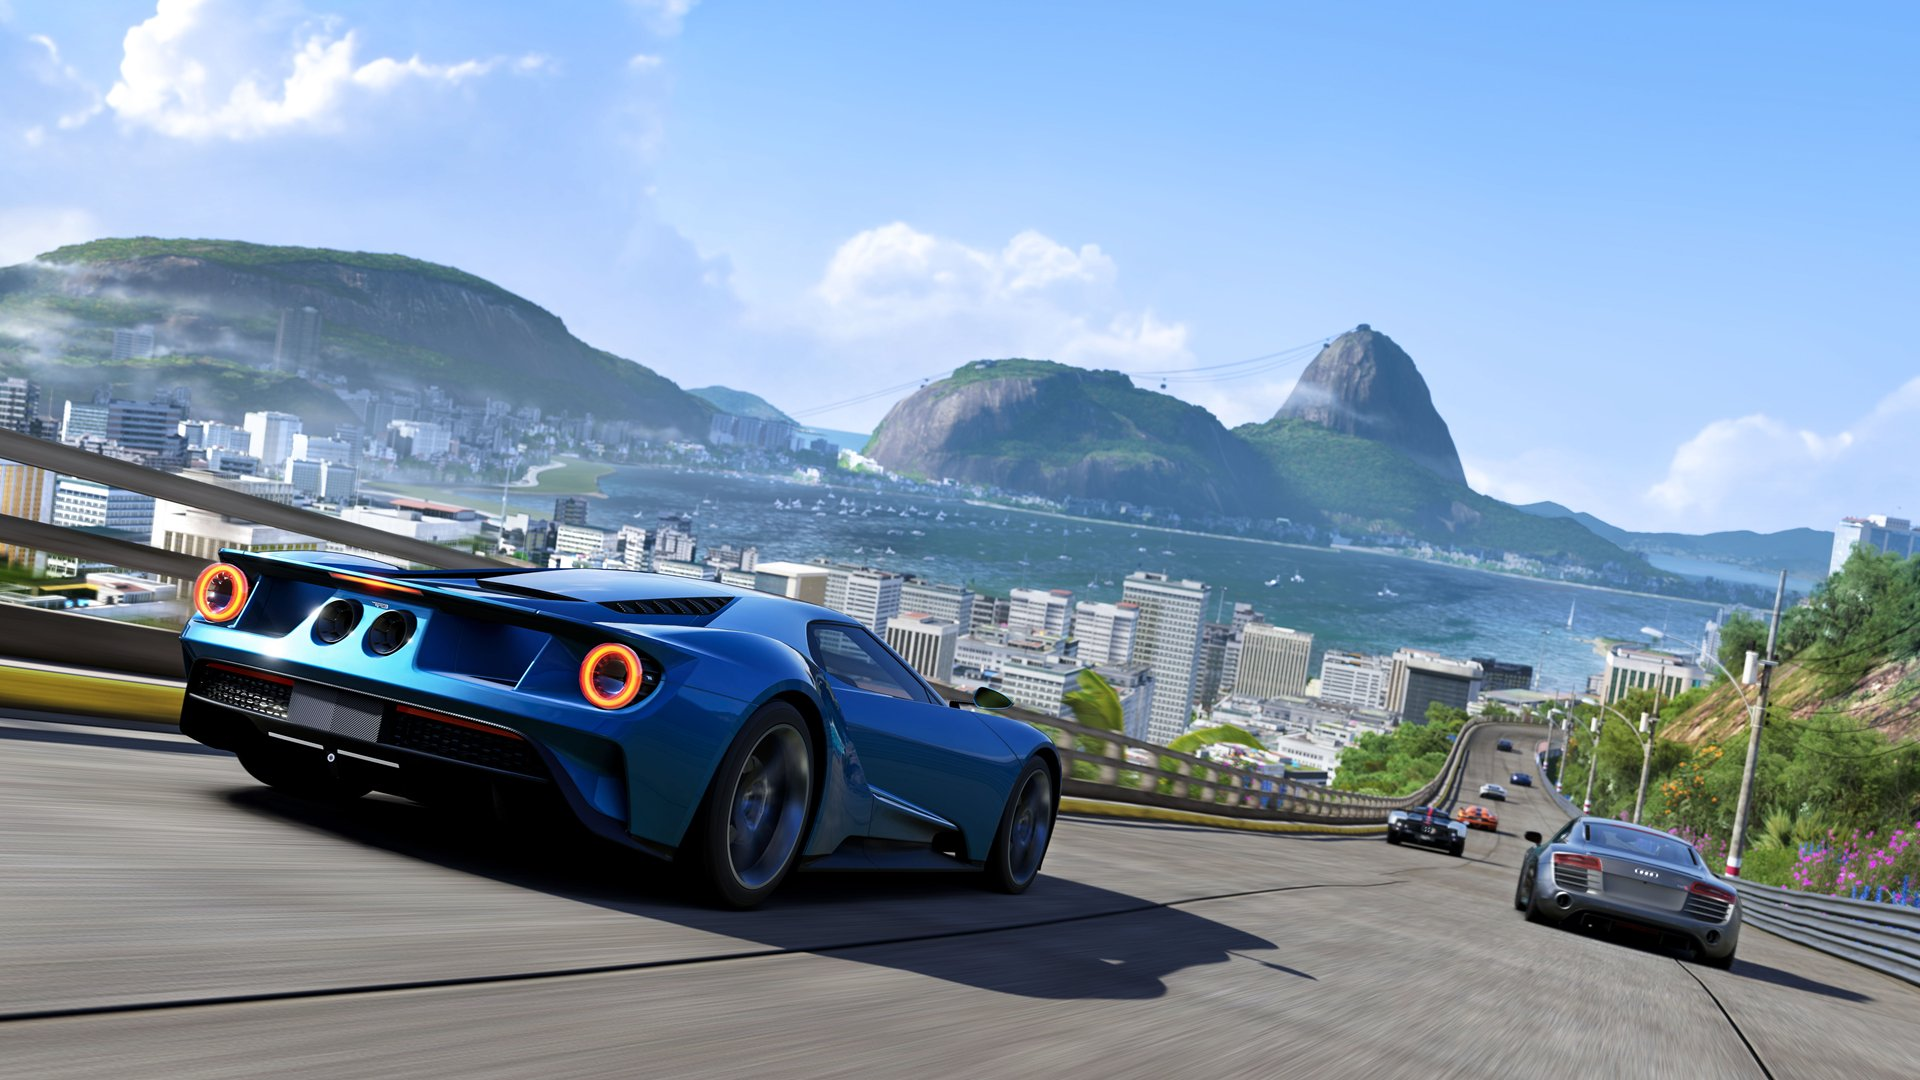 Forza Motorsport 7 Wallpapers Ultra Hd Gaming Backgrounds: Forza Motorsport 7 Wallpapers High Quality